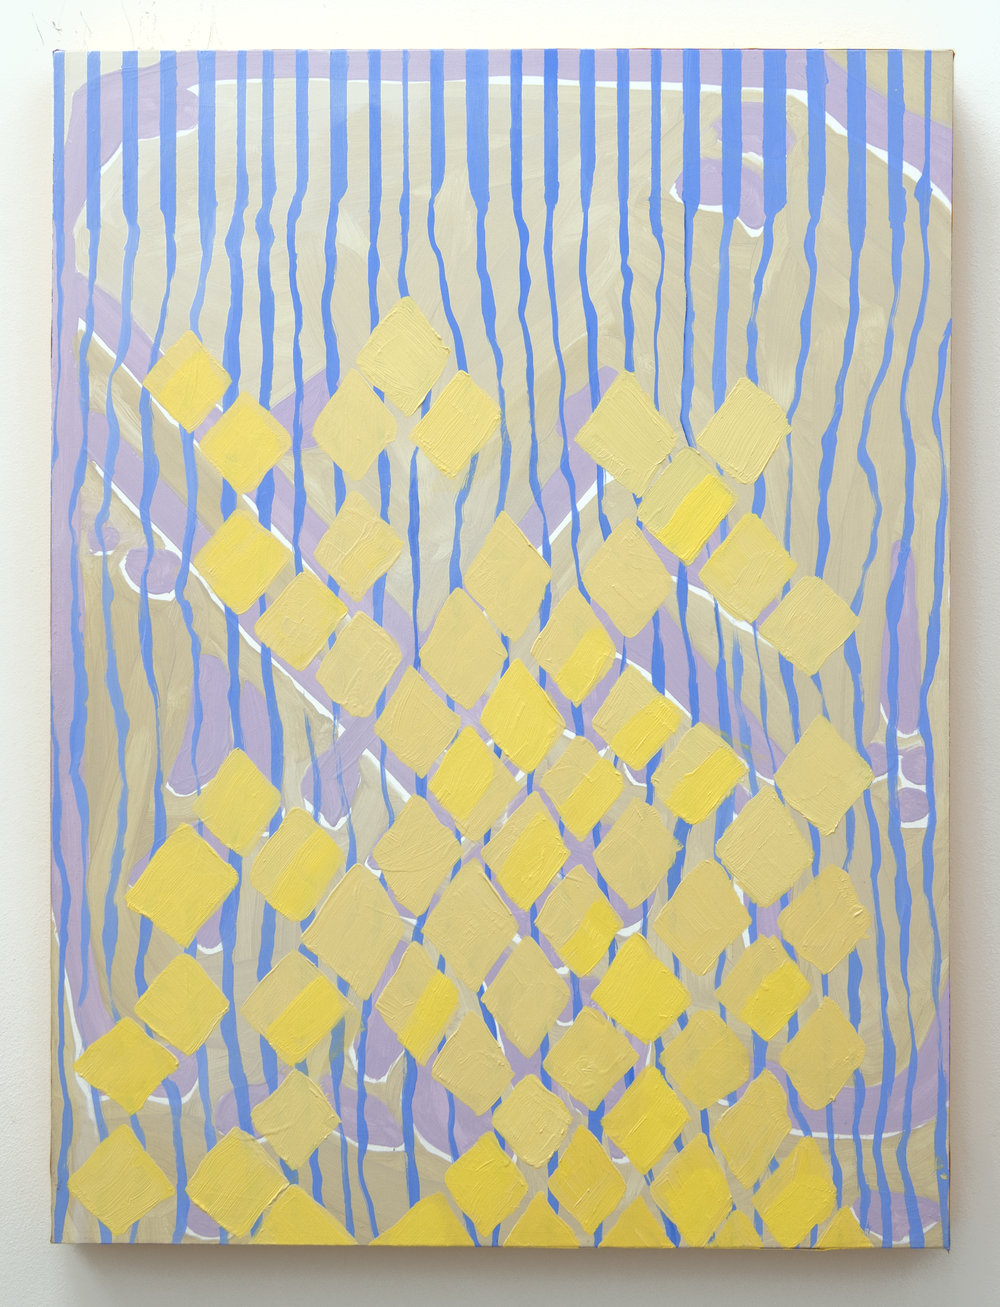 Slow Evolution, 2013